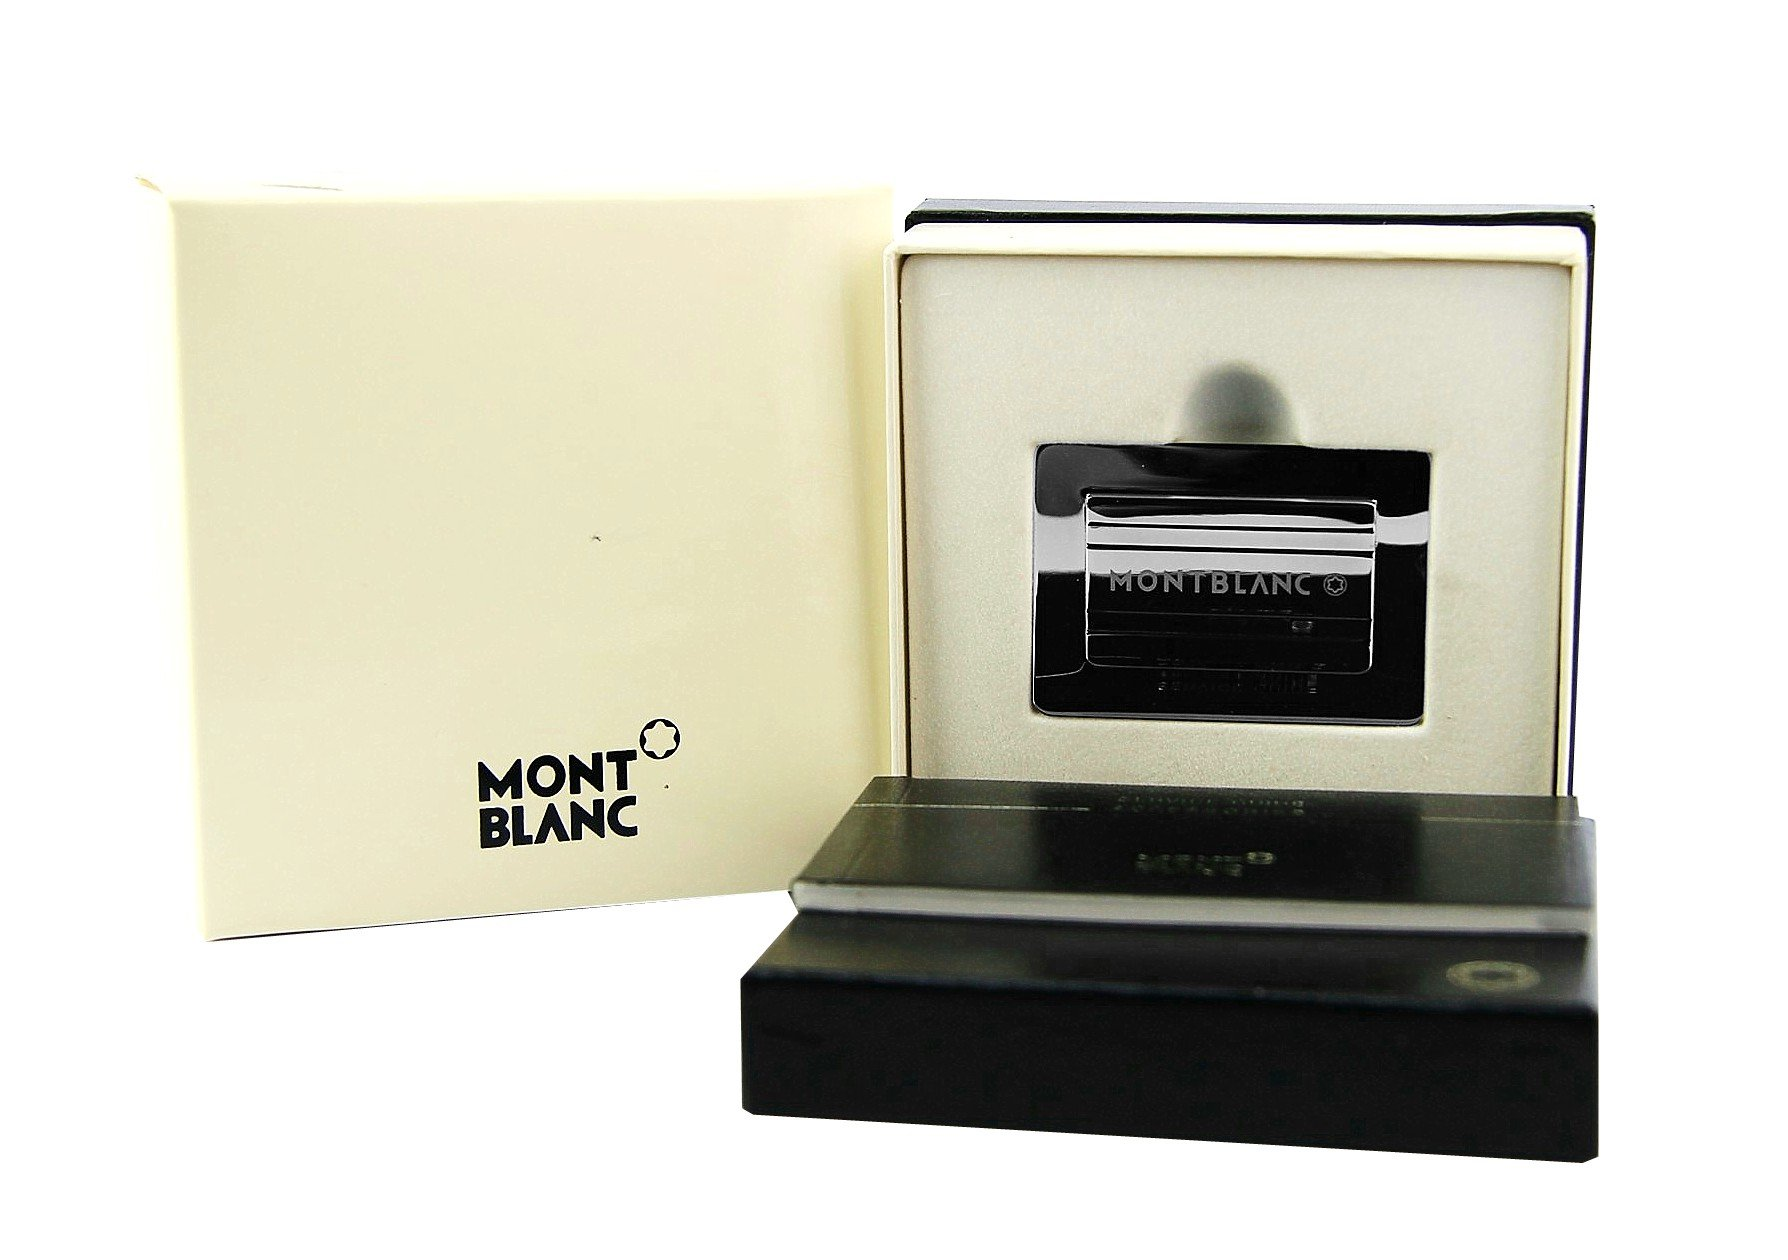 BRAND NEW, BOOKMARK IN ORIGINAL MONTBLANC BLACK BOX, RARE ITEM. SERVICE GUIDE, 100 % AUTHENTIC, MADE IN GERMANY.